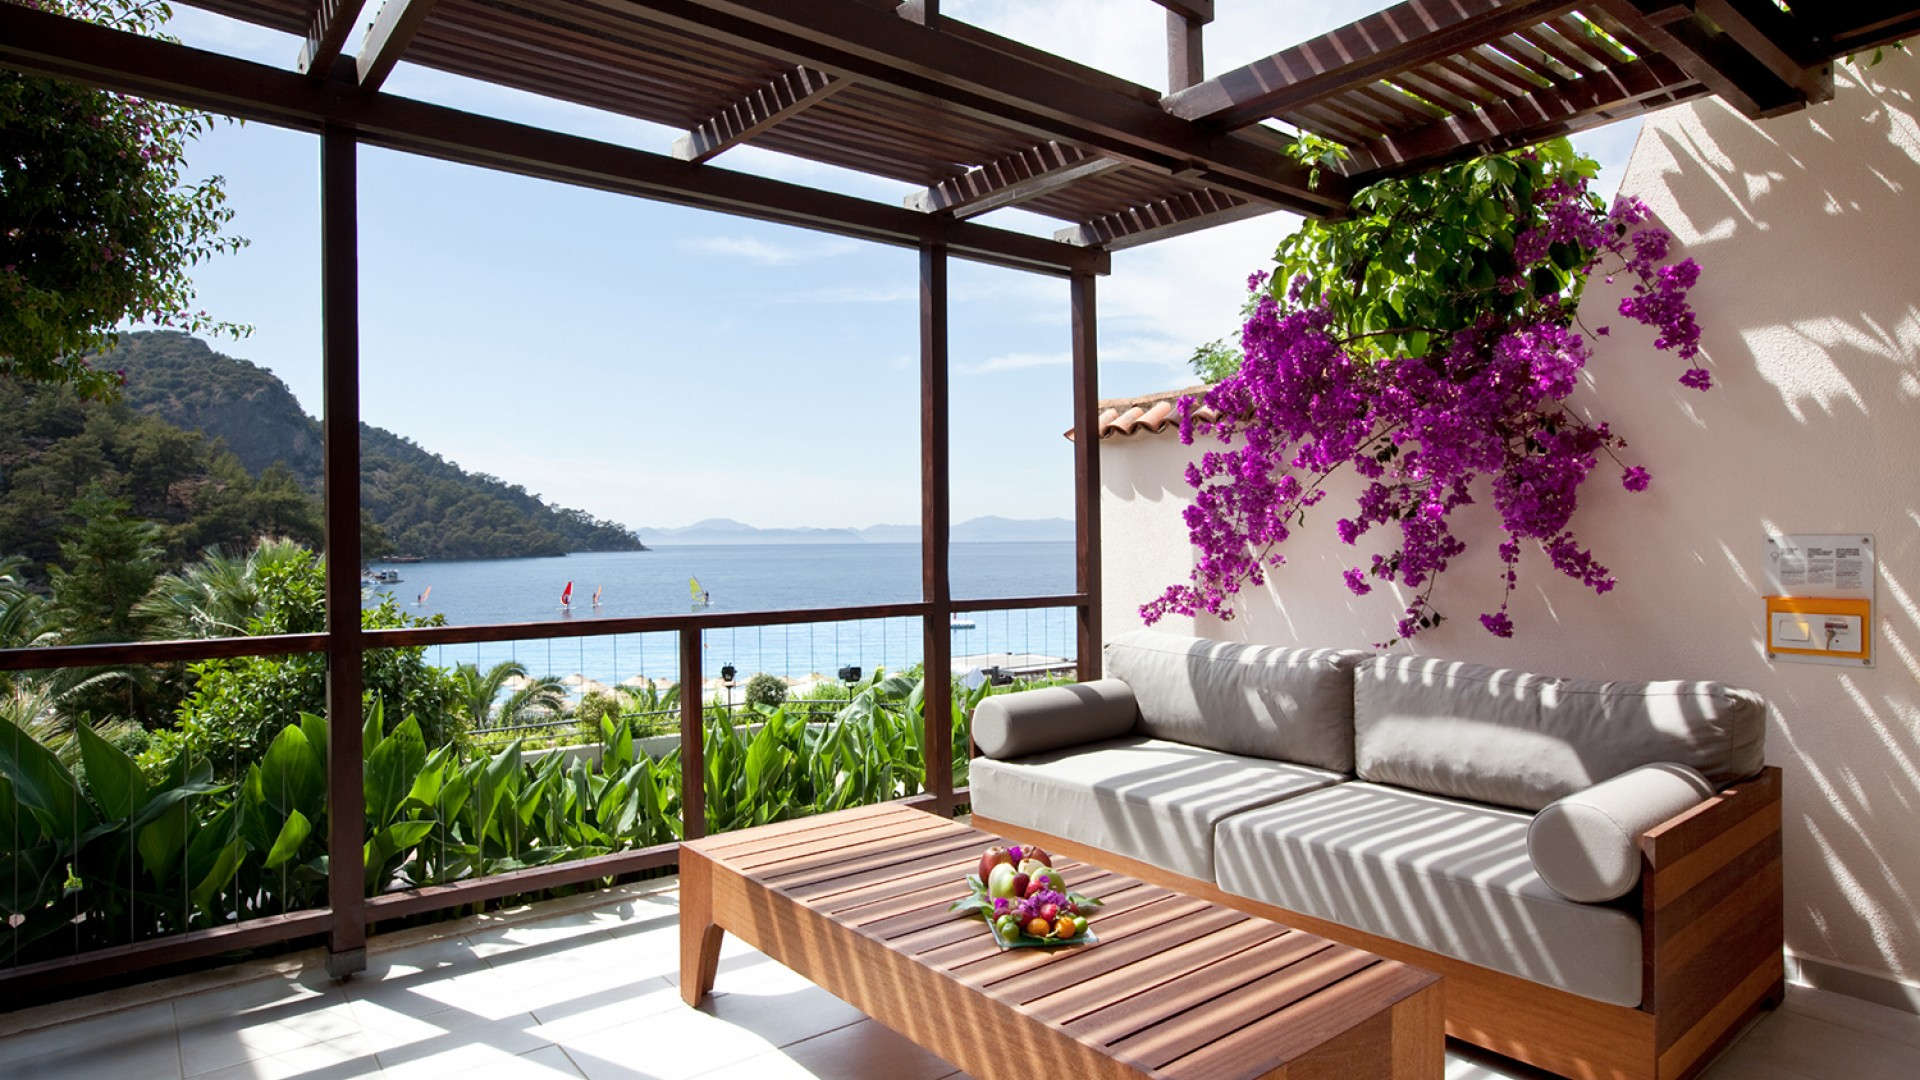 Verandah at Hillside Beach Club luxury resort